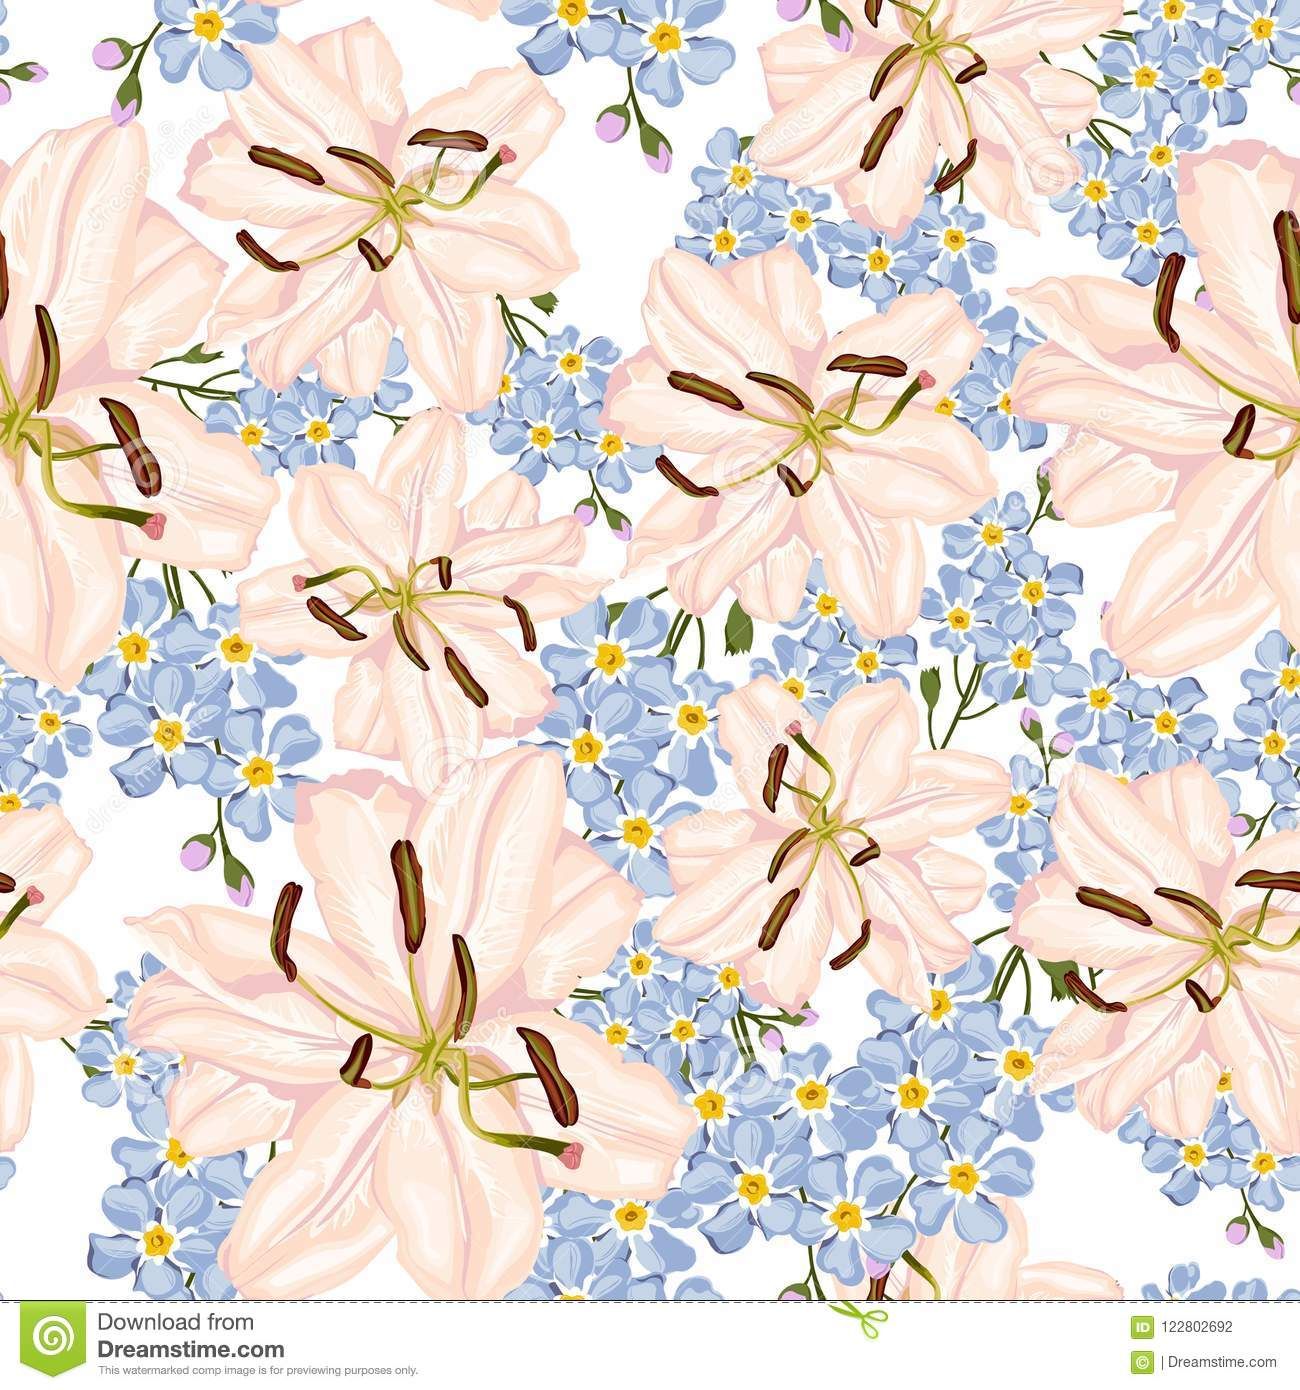 Royal Lilies Christmas Winter Rose Floral Seamless Pattern Texture